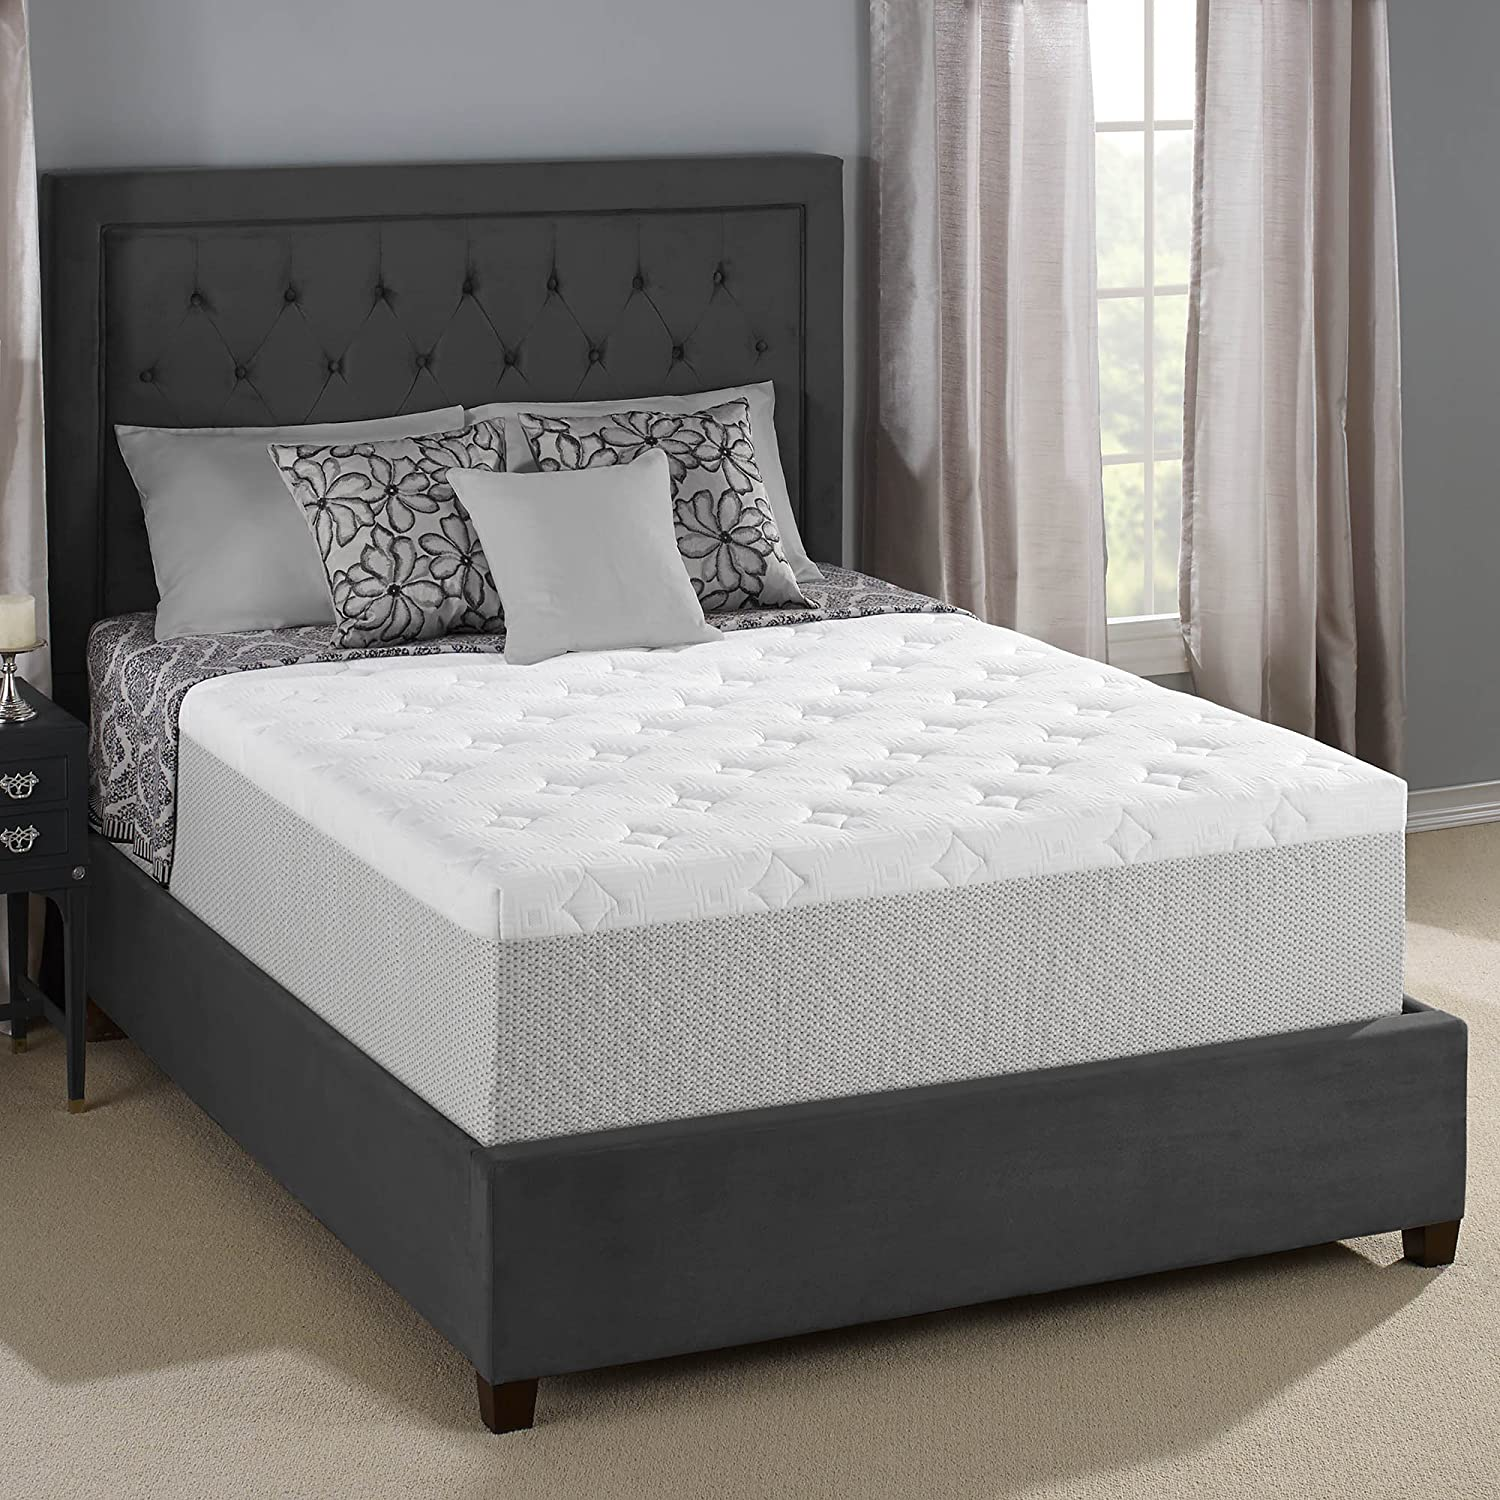 Amazon Serta 14 inch Gel Memory Foam Mattress King Kitchen